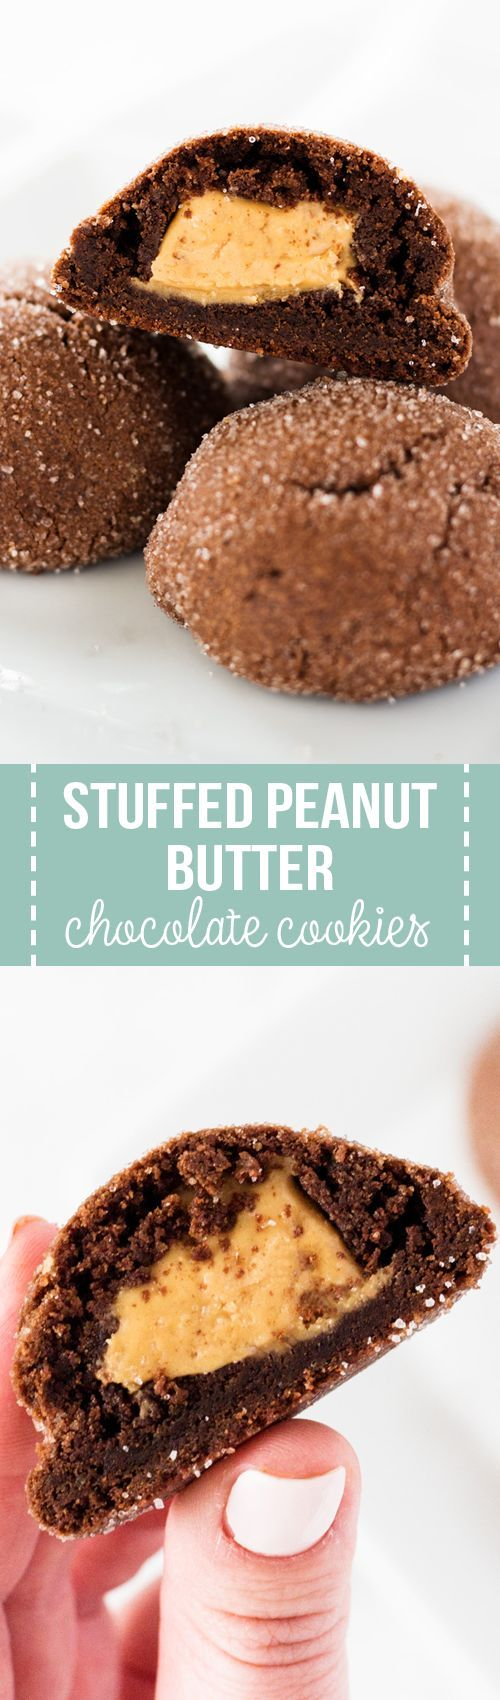 Stuffed peanut butter chocolate cookies have the best of both worlds. The chewy chocolate cookies have a peanut butter surprise inside!